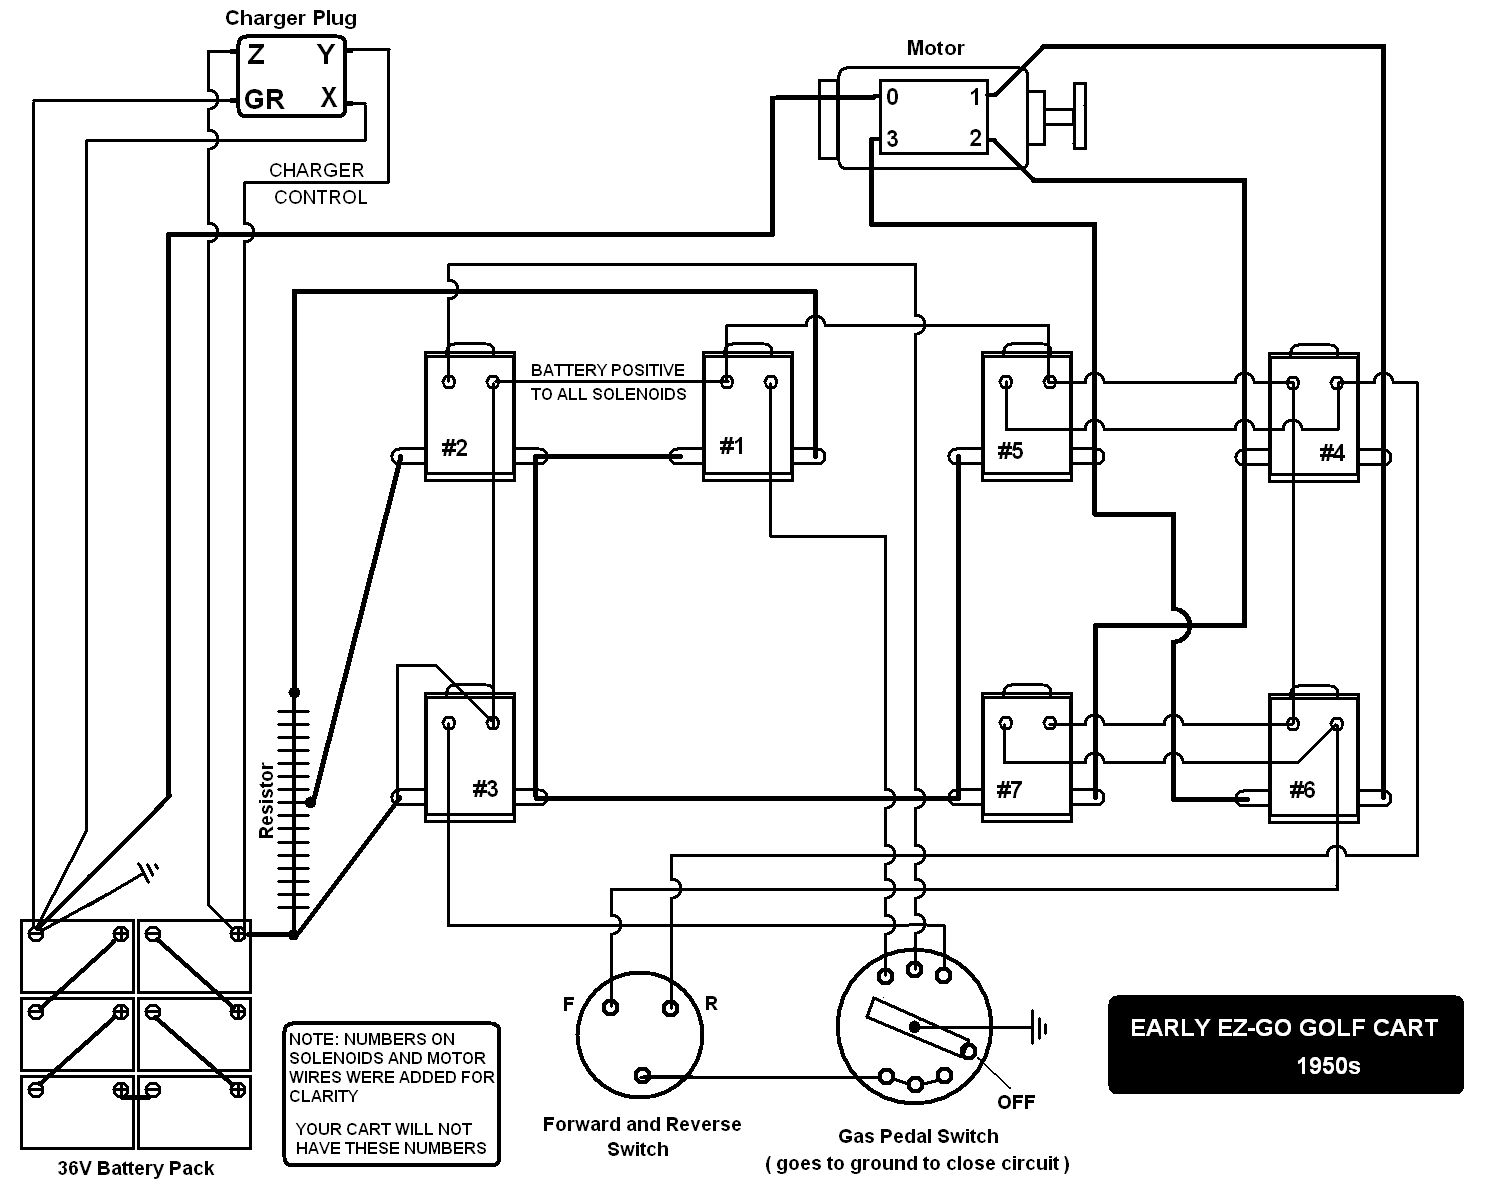 early_ezgo_wiring ezgo wiring diagram ez wiring \u2022 wiring diagrams j squared co powerwise 36v charger wiring diagram at fashall.co